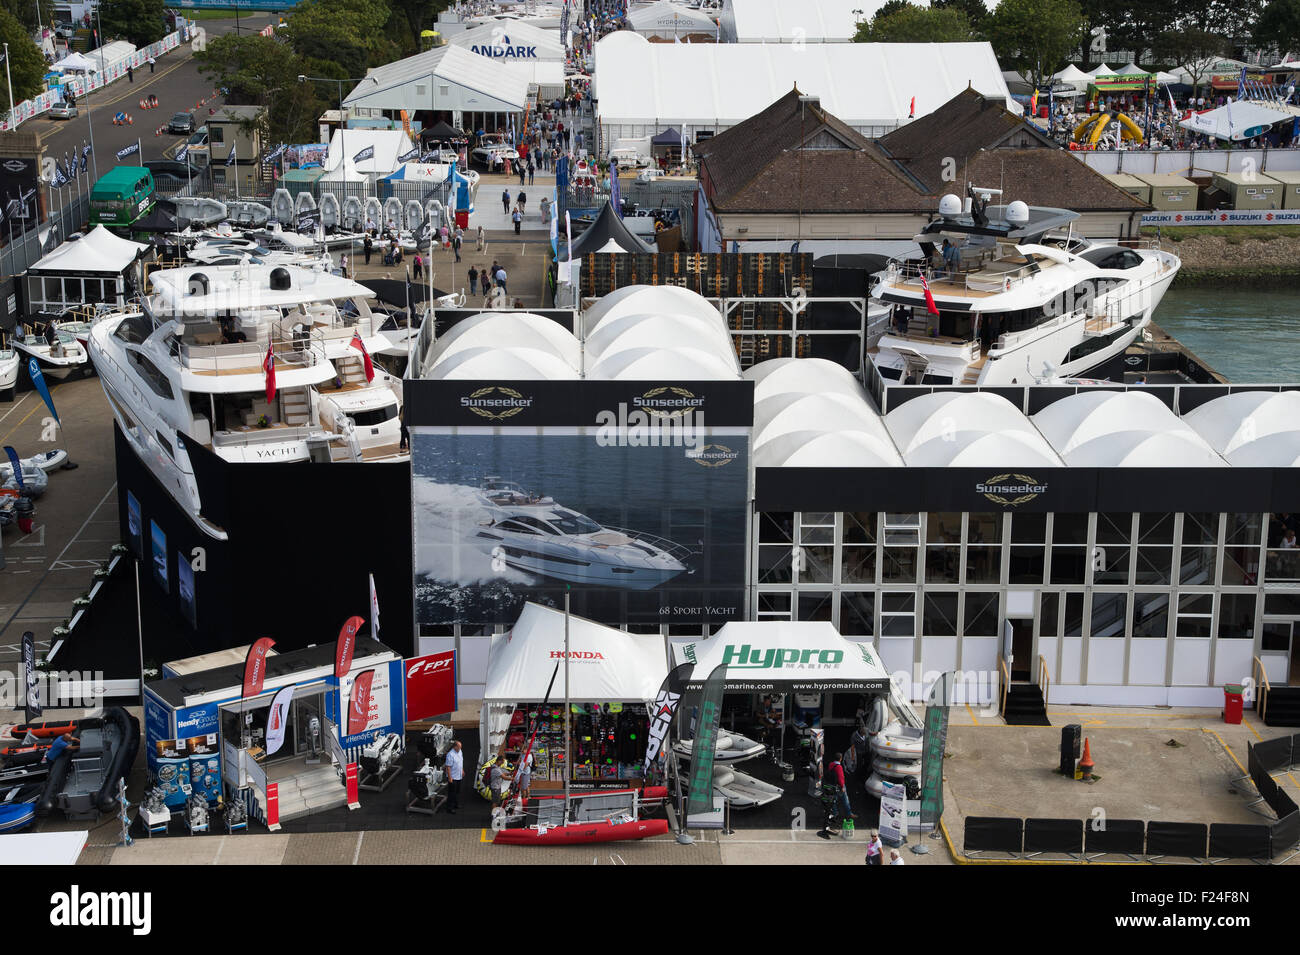 Southampton, UK. 11th September 2015. Southampton Boat Show 2015. A view of the boat show exhibition area from the Stock Photo